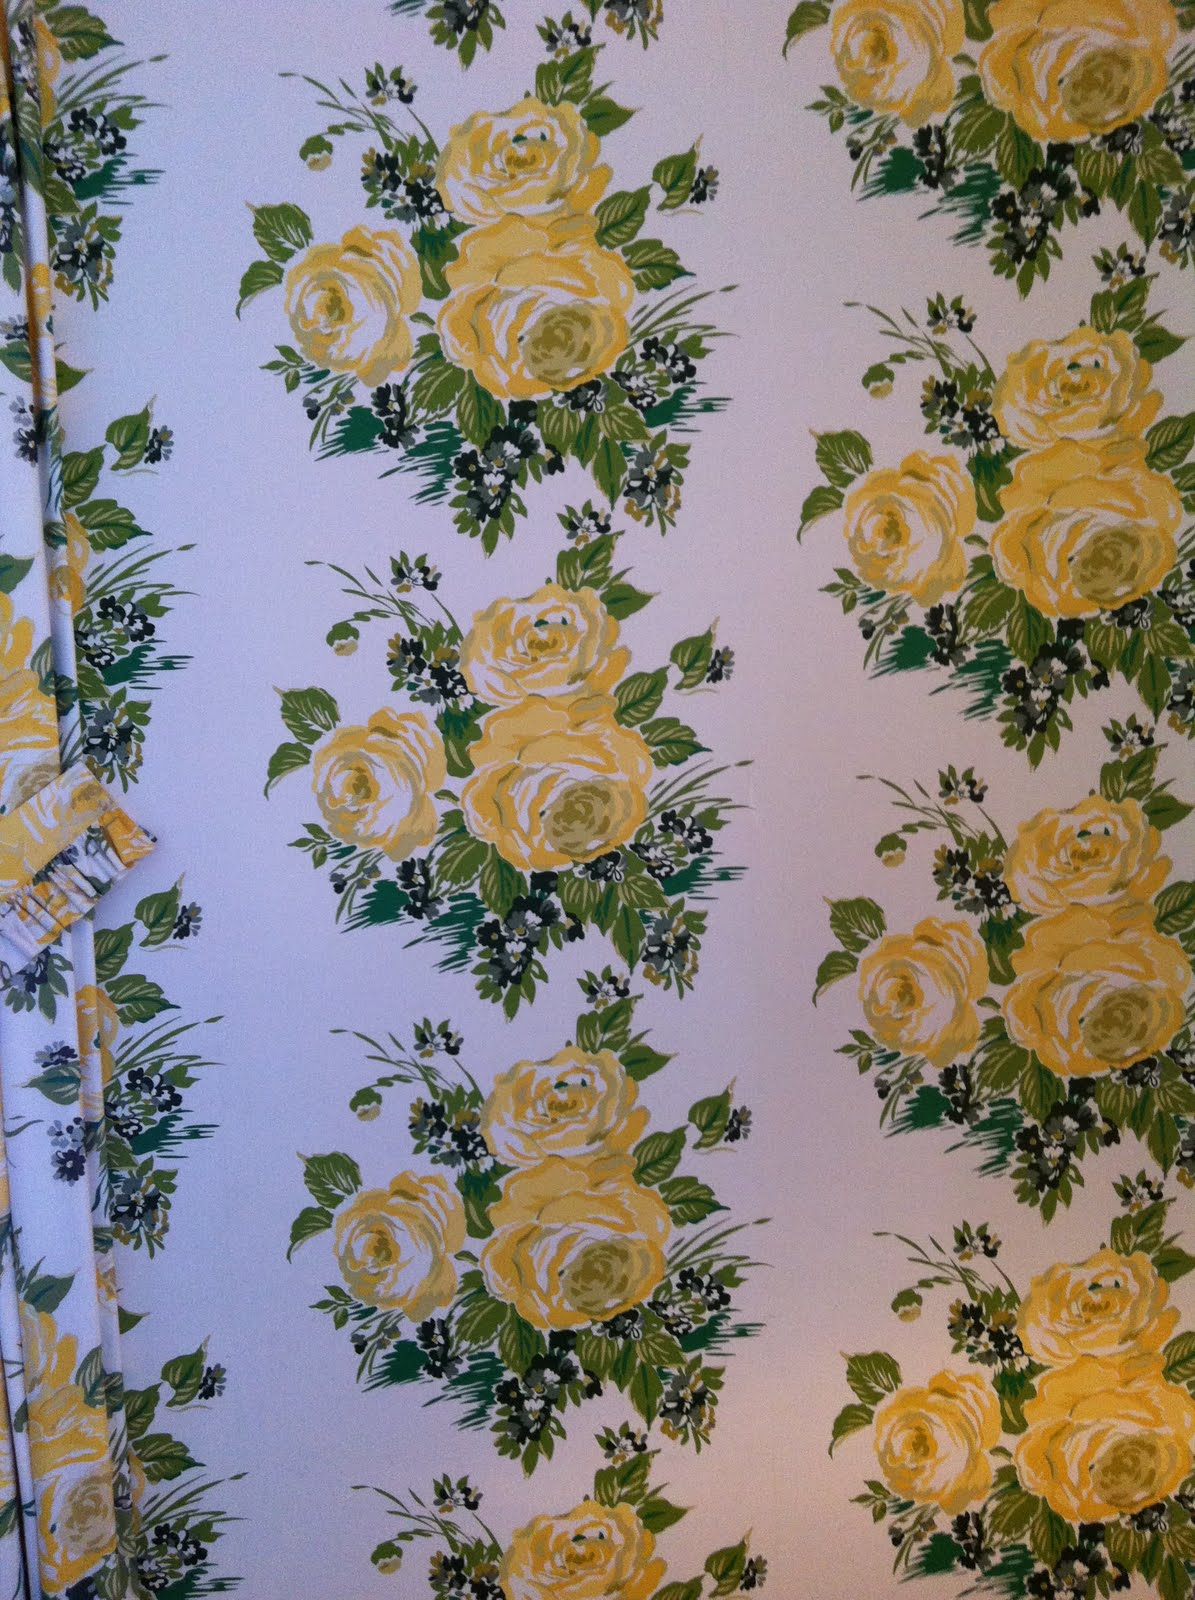 rincess Grace Rose Wallpaper by Carleton Varney in our hotel bedroom 1195x1600